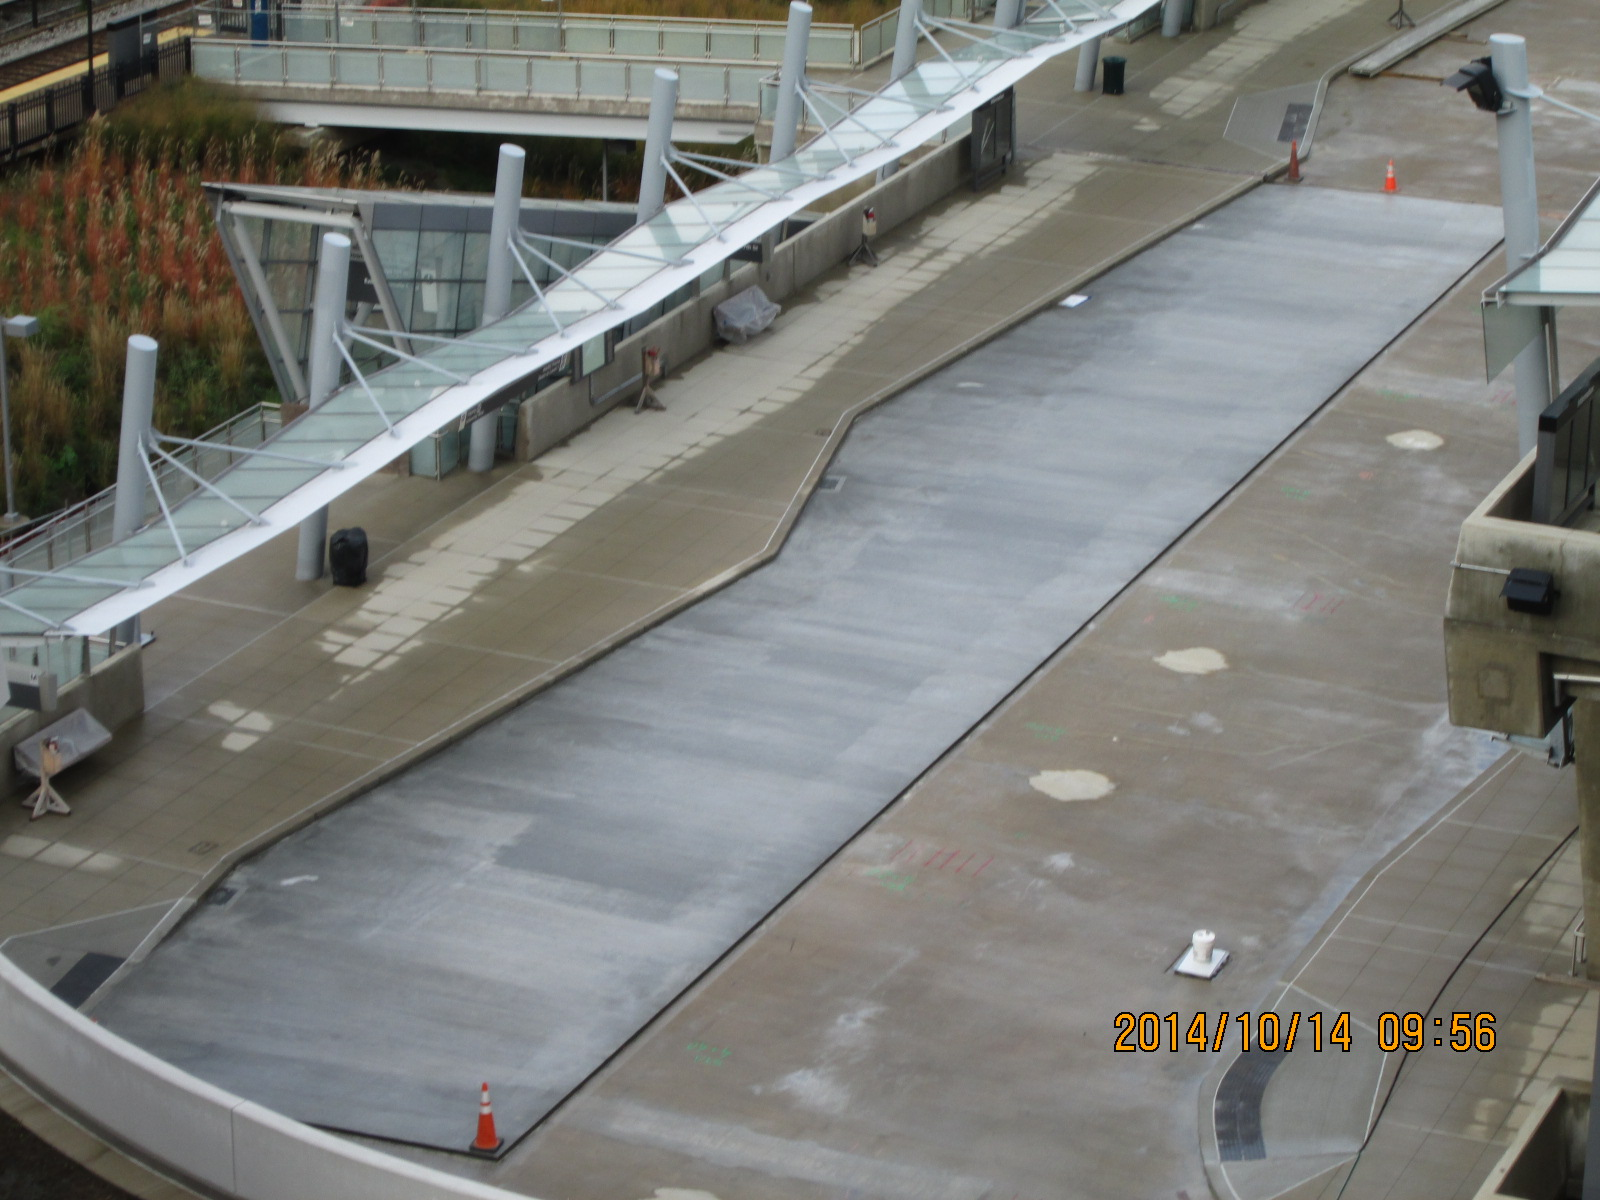 Silver Sprint Transit Center - construction image